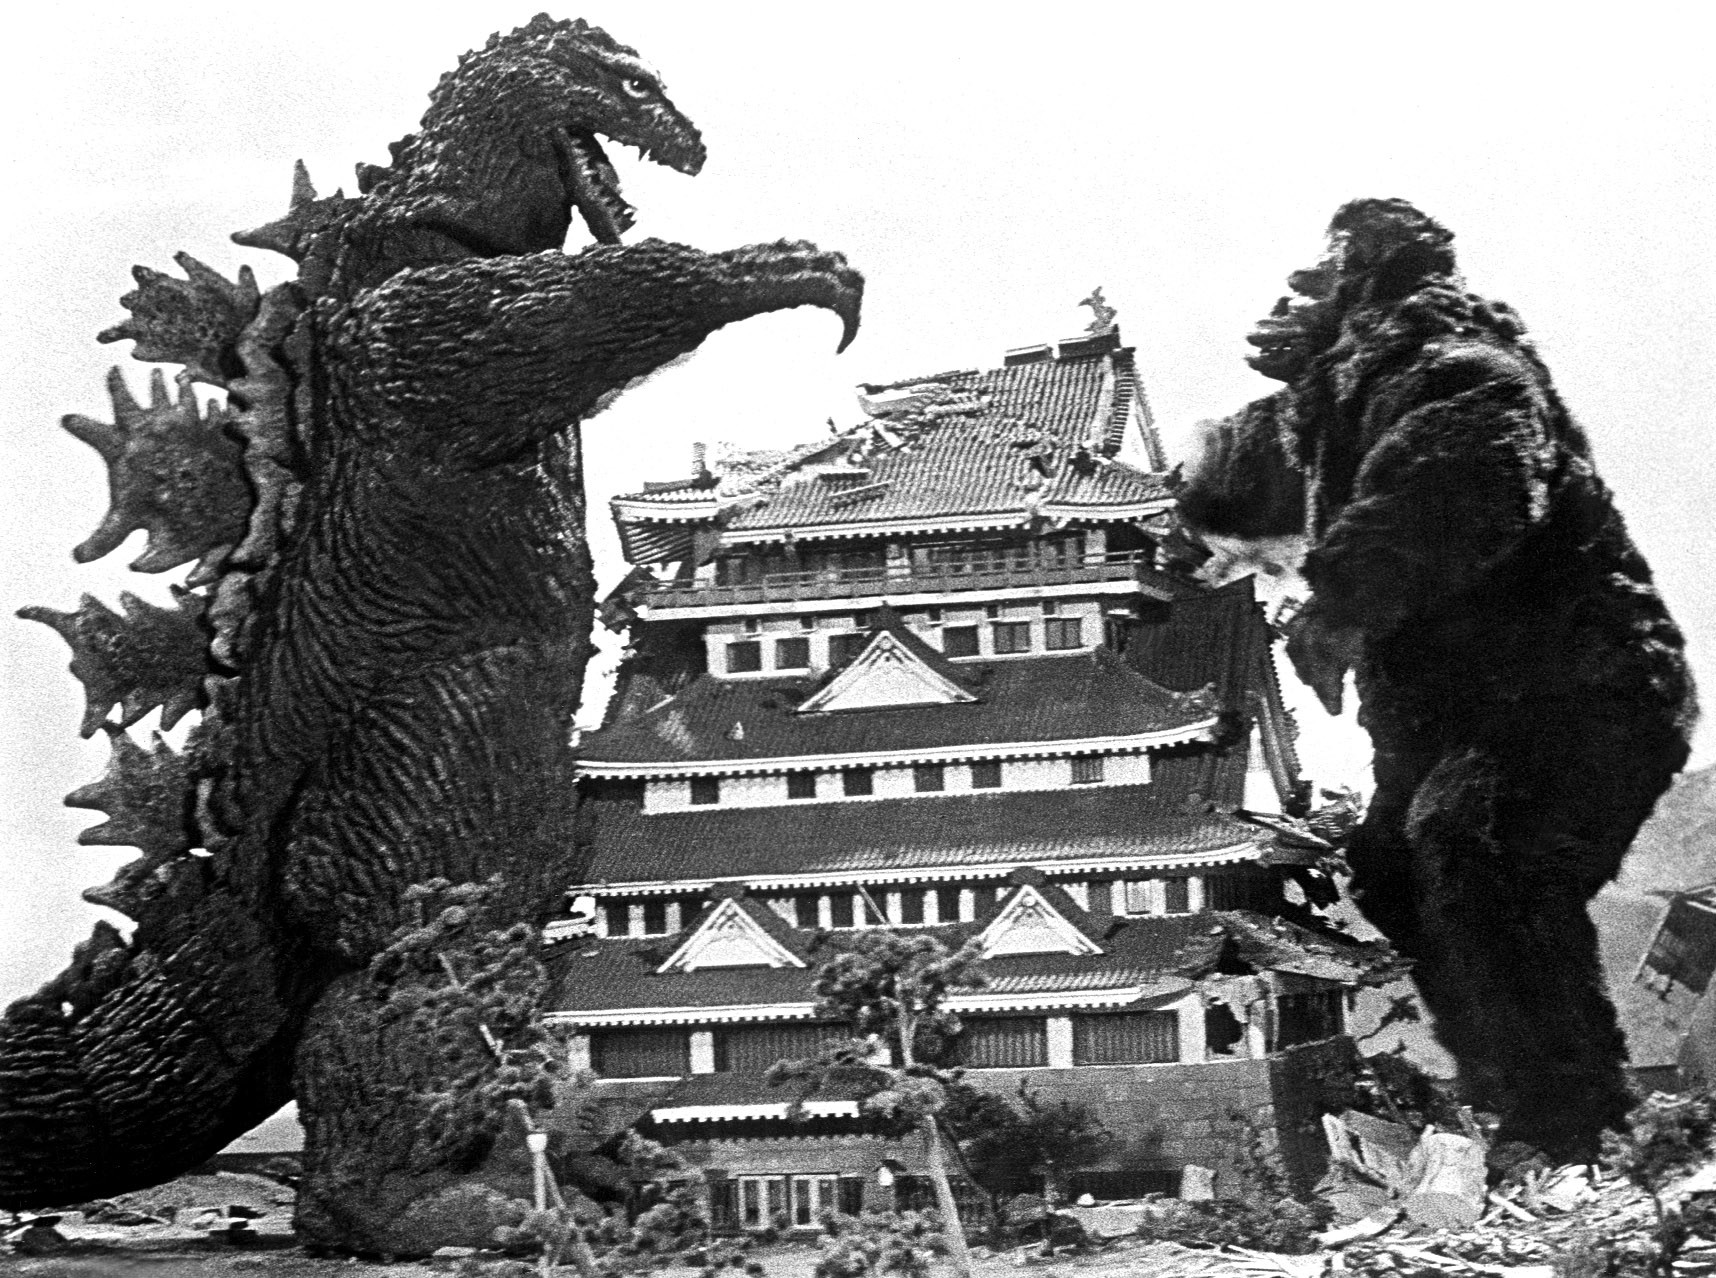 king kong a cultural snapshot essay King kong race, sex, and rebellionby this principle is based on the assumption that the film and its meaning reflect the cultural environment of its time and.